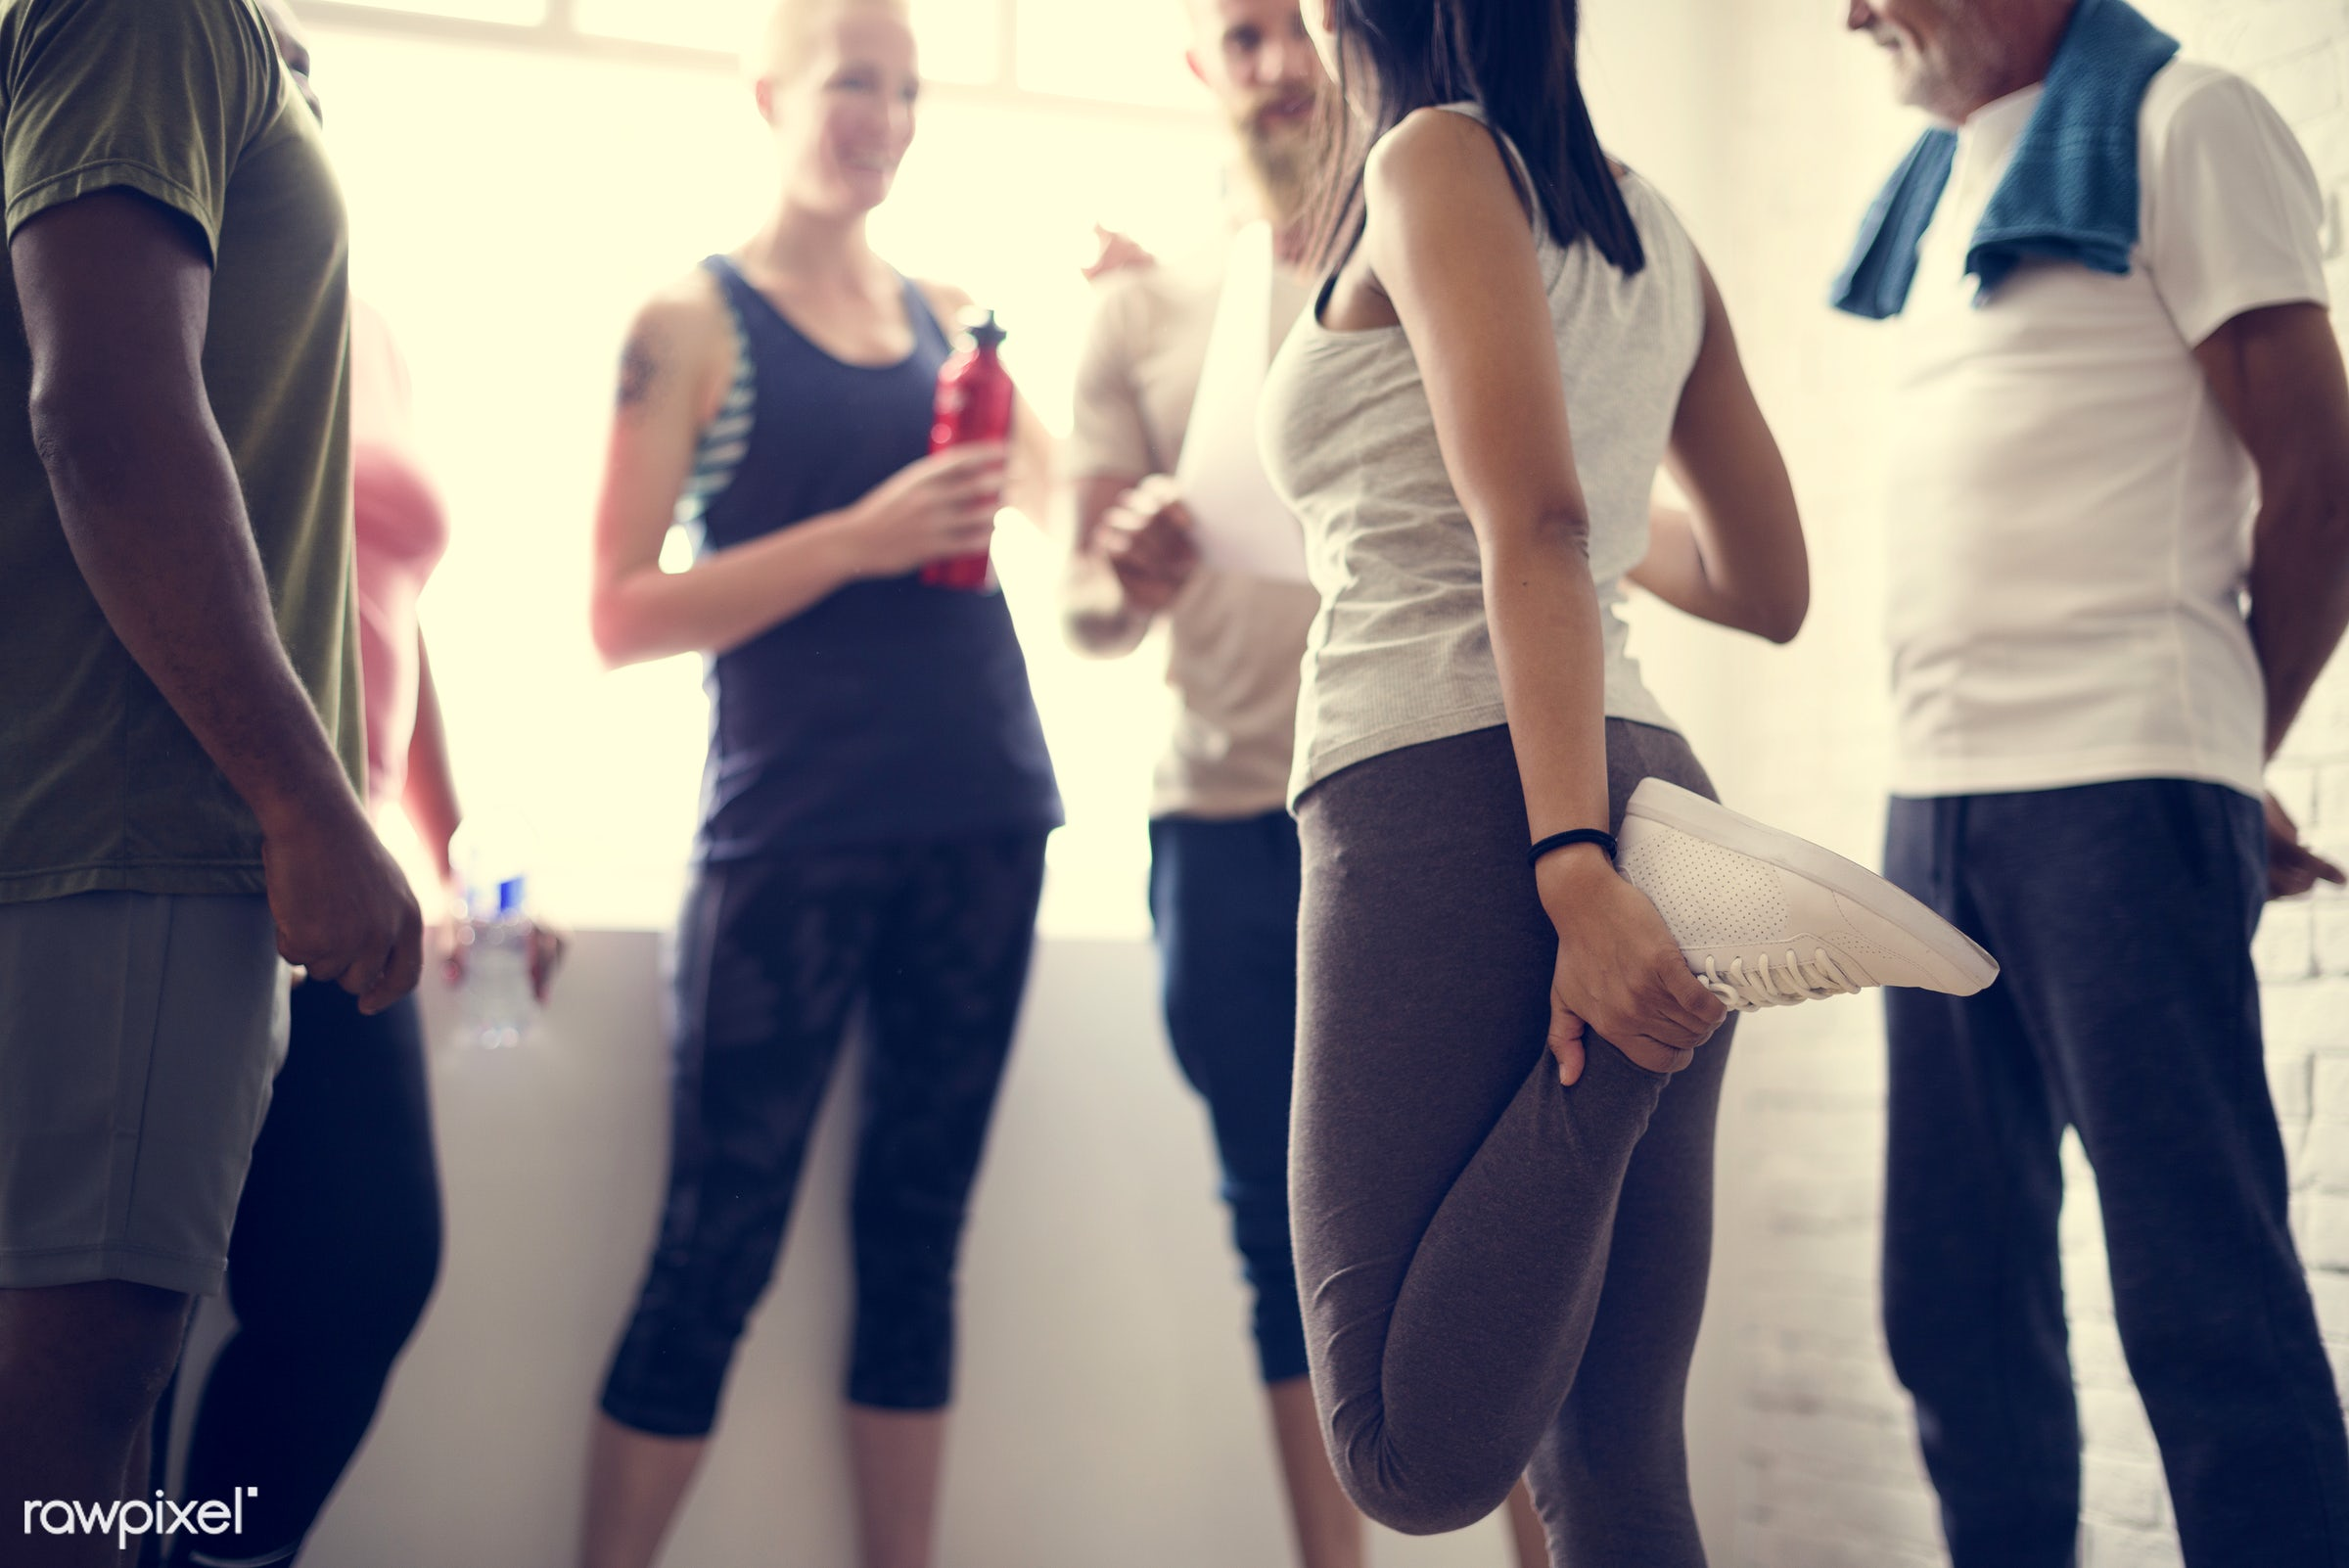 physical, discussion, diverse, relax, variation, recreation, people, stretching, together, break, friends, lifestyle, gym,...